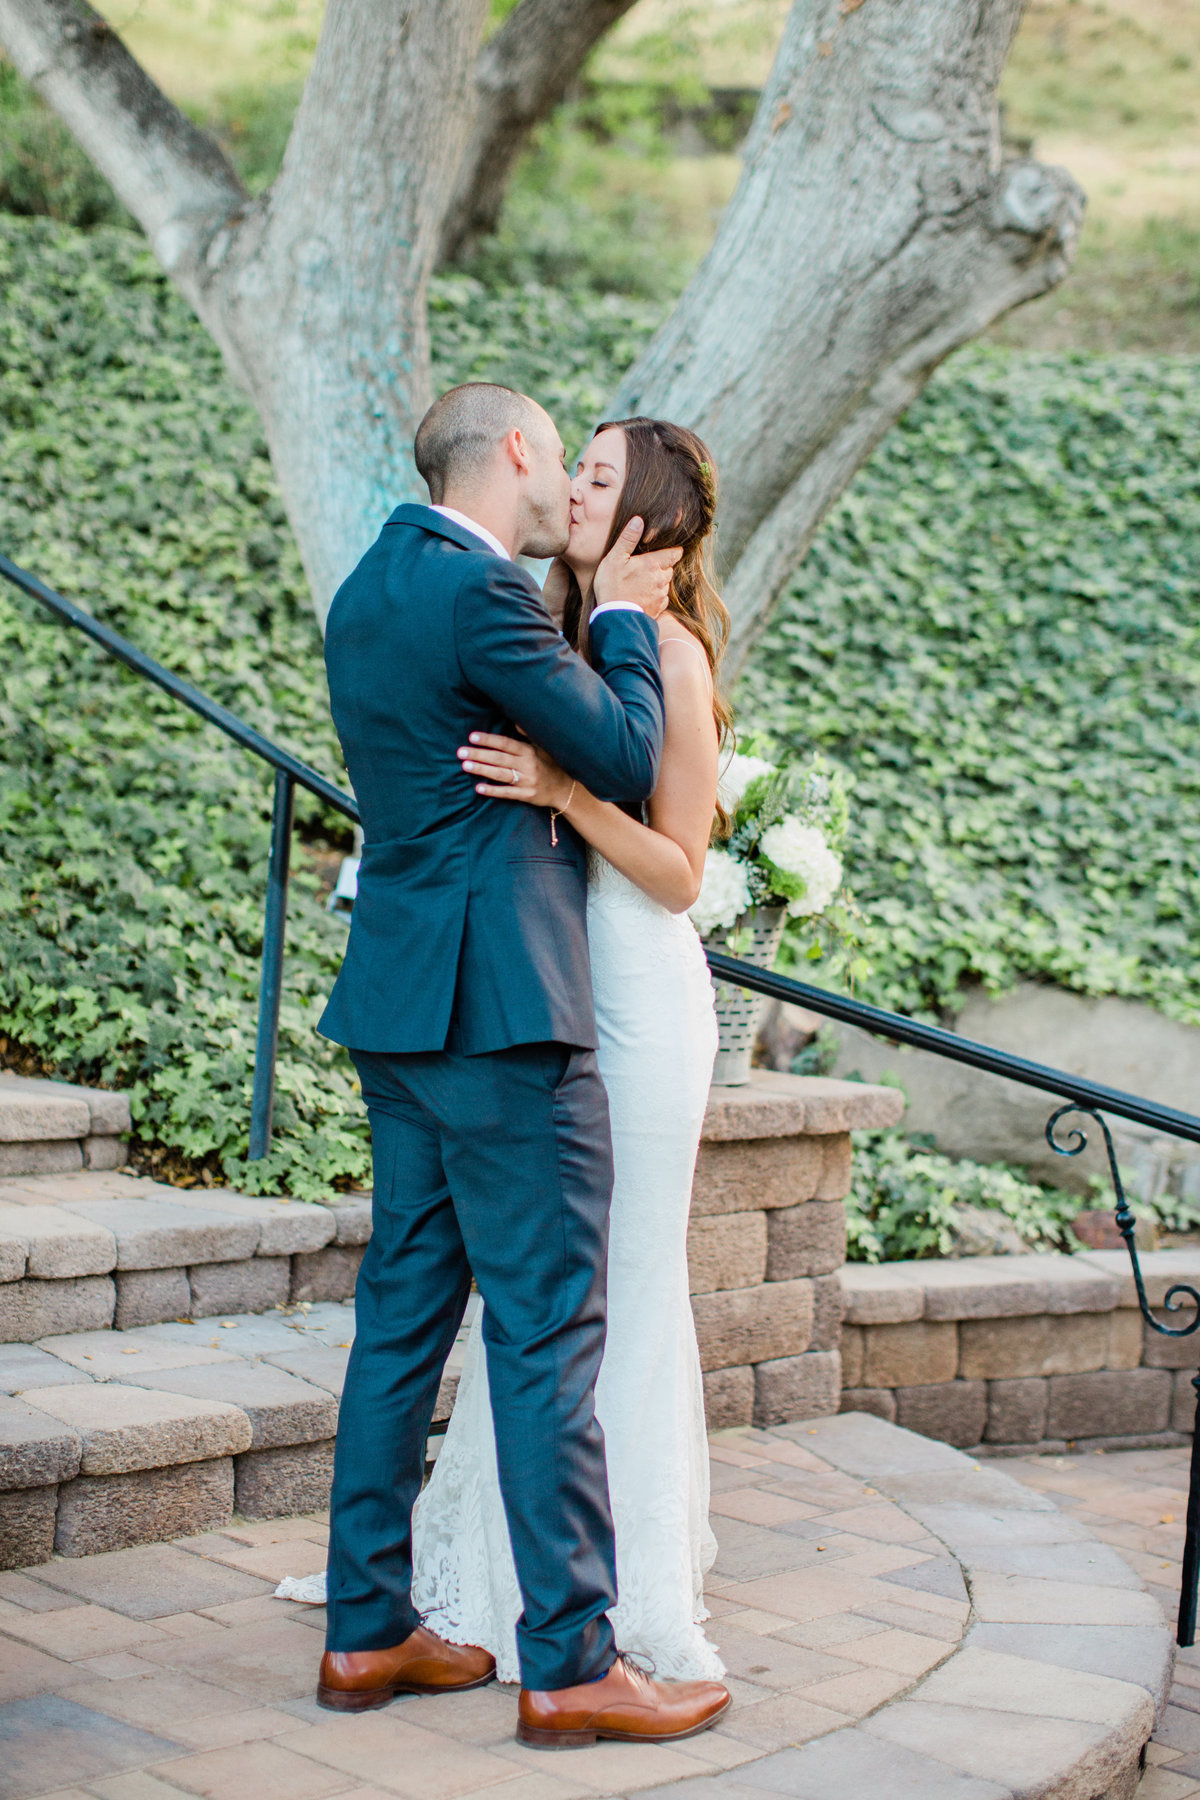 Paige & Thomas are Married| Circle Oak Ranch Wedding | Katie Schoepflin Photography725